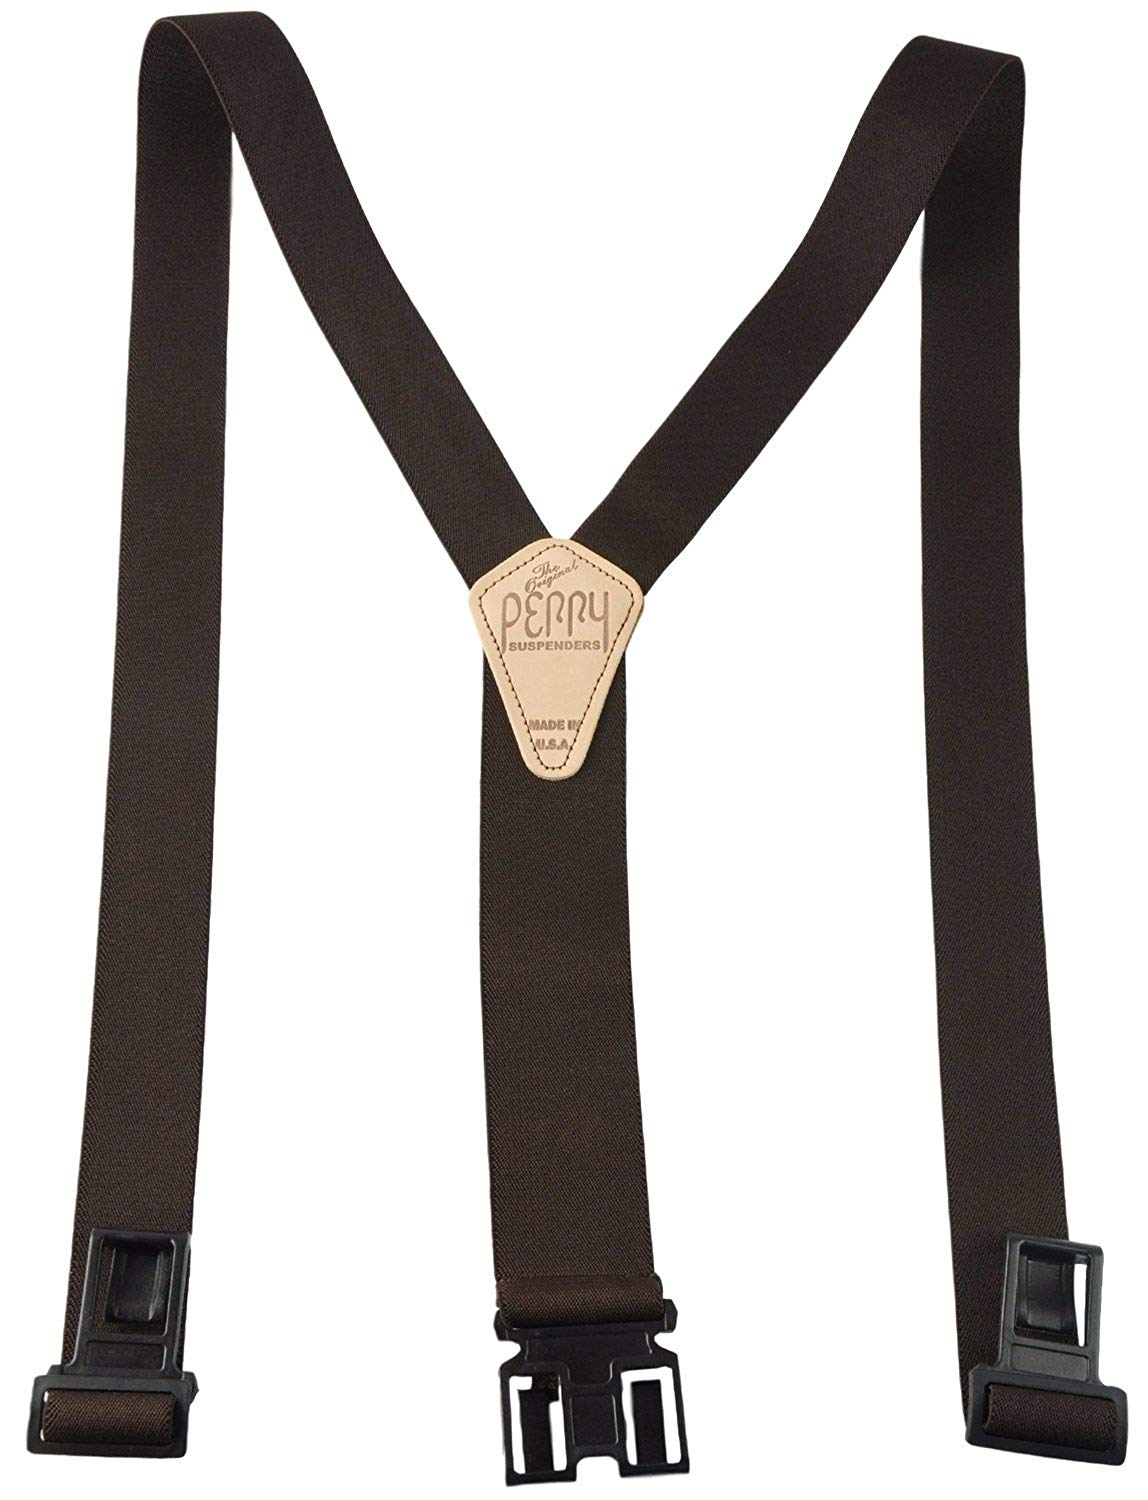 Perry Products SN200 Men's Clip-On 2-in Suspenders(Regular, Brown)